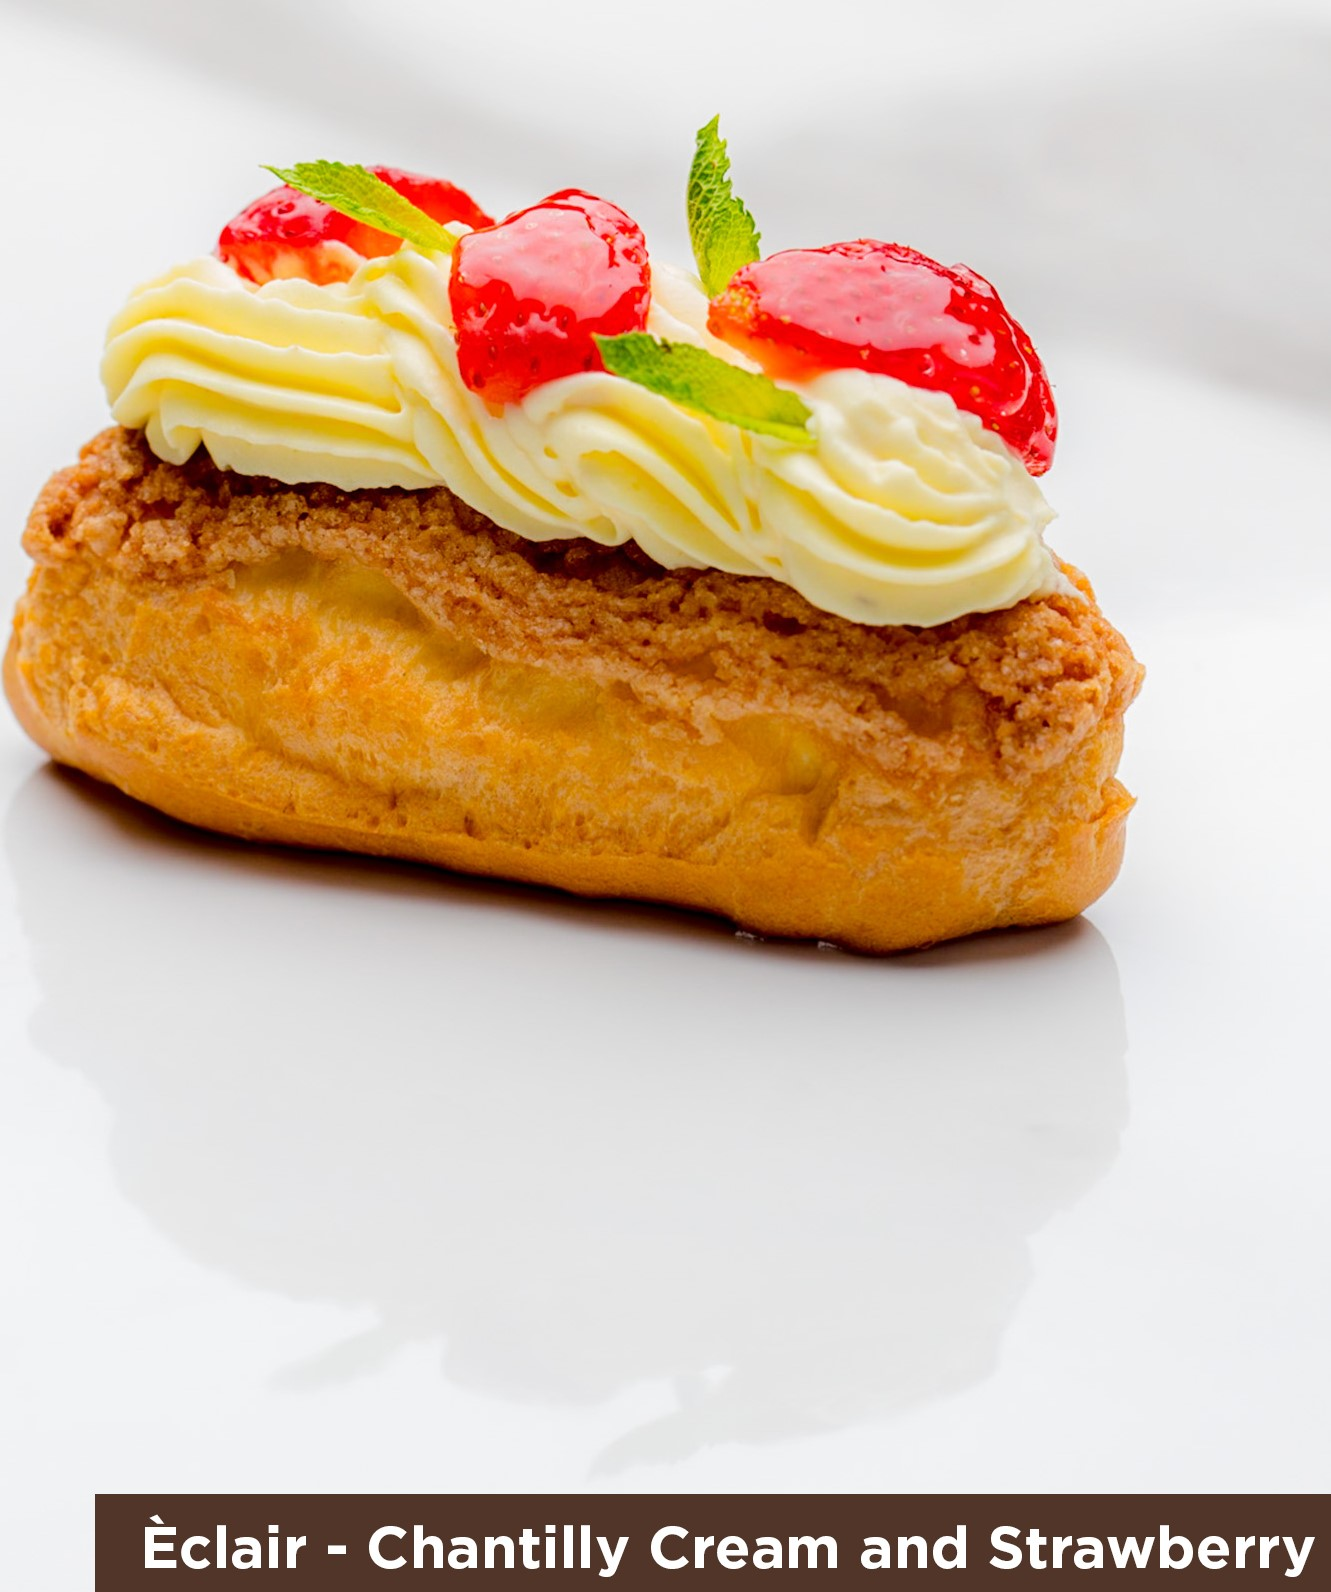 Eclair Chantilly Cream & Strawberry